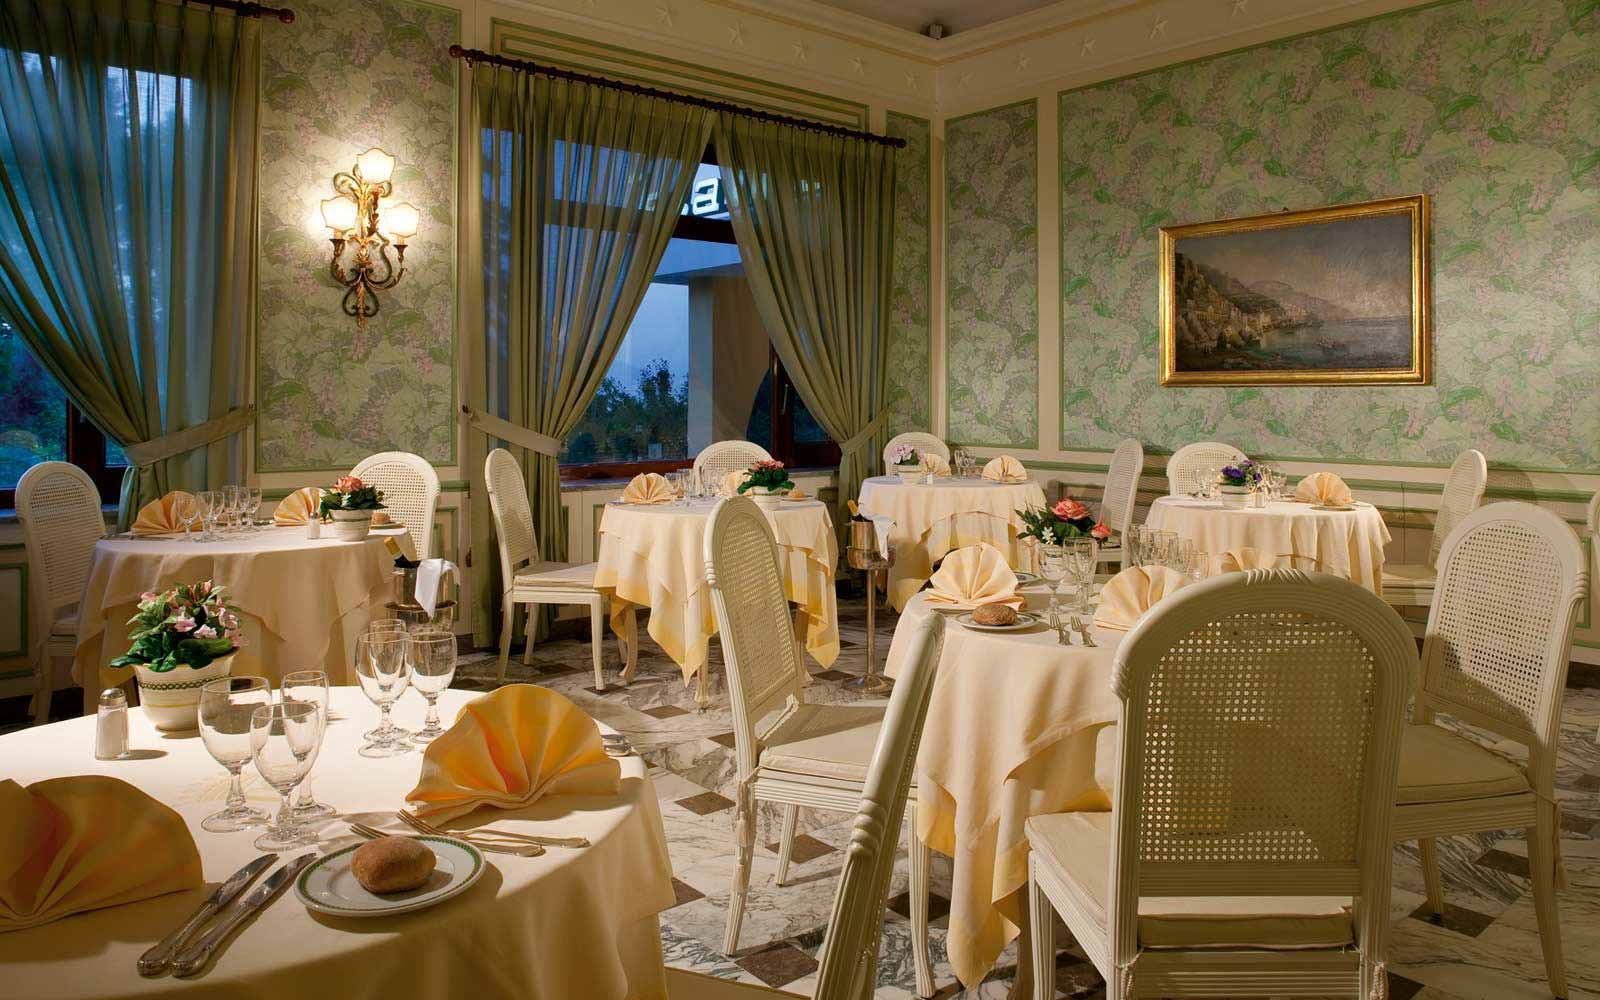 L'Altea restaurant at Grand Hotel de la Ville